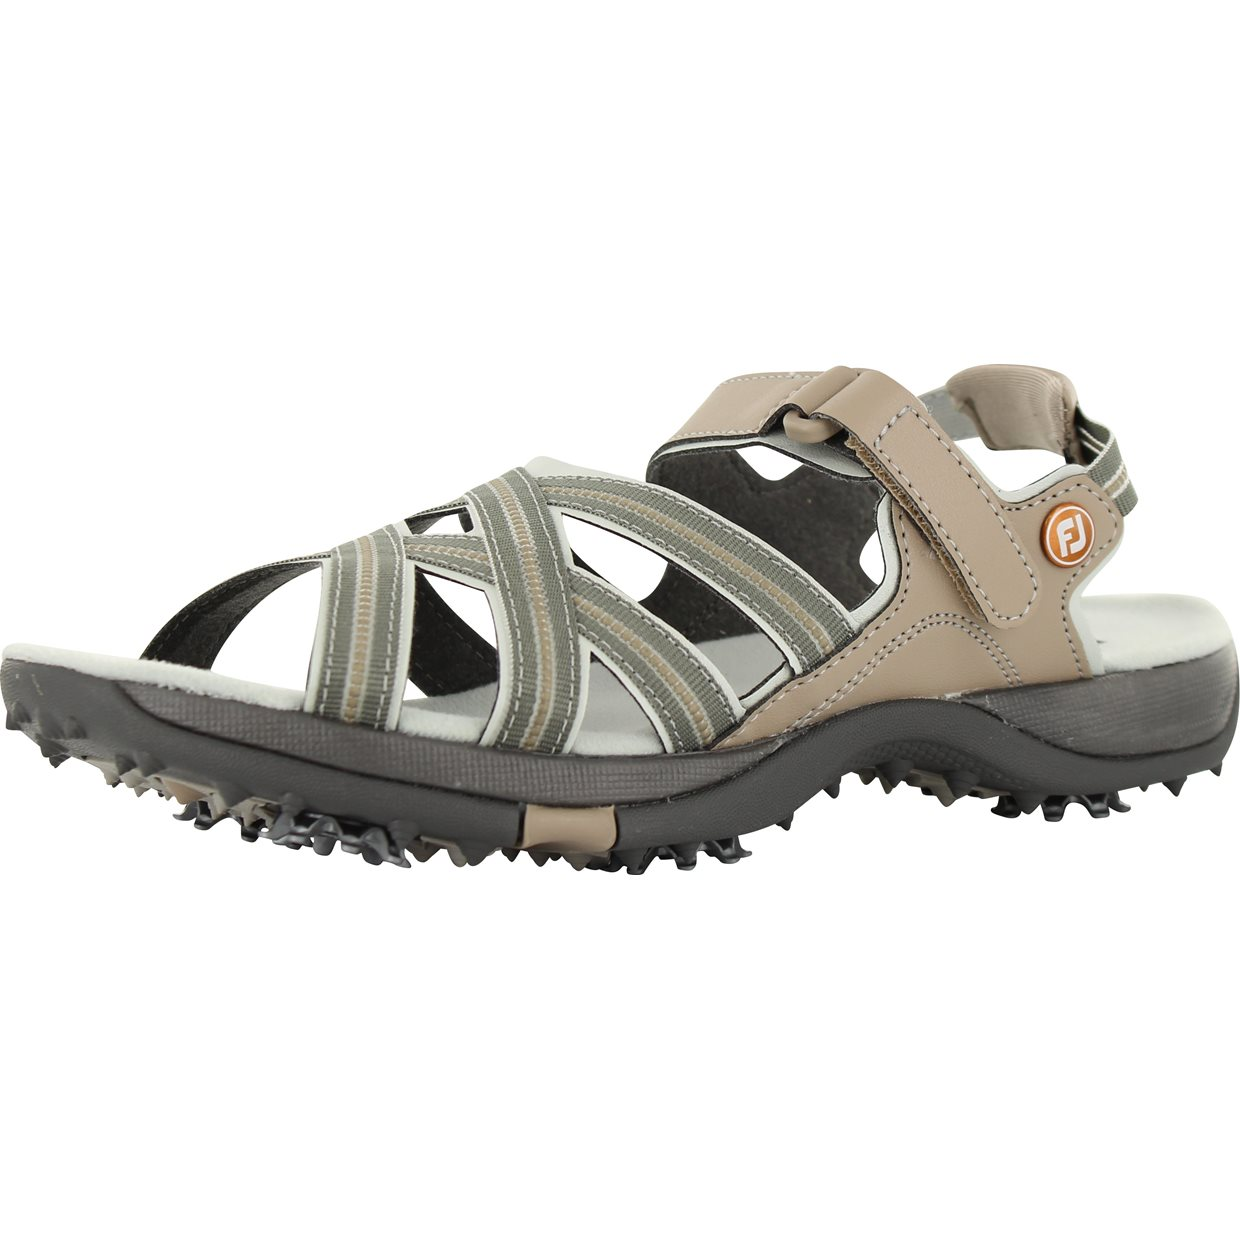 Used Ladies Golf Clubs >> FootJoy Sports Sandal Ladies Golf Shoes at GlobalGolf.com